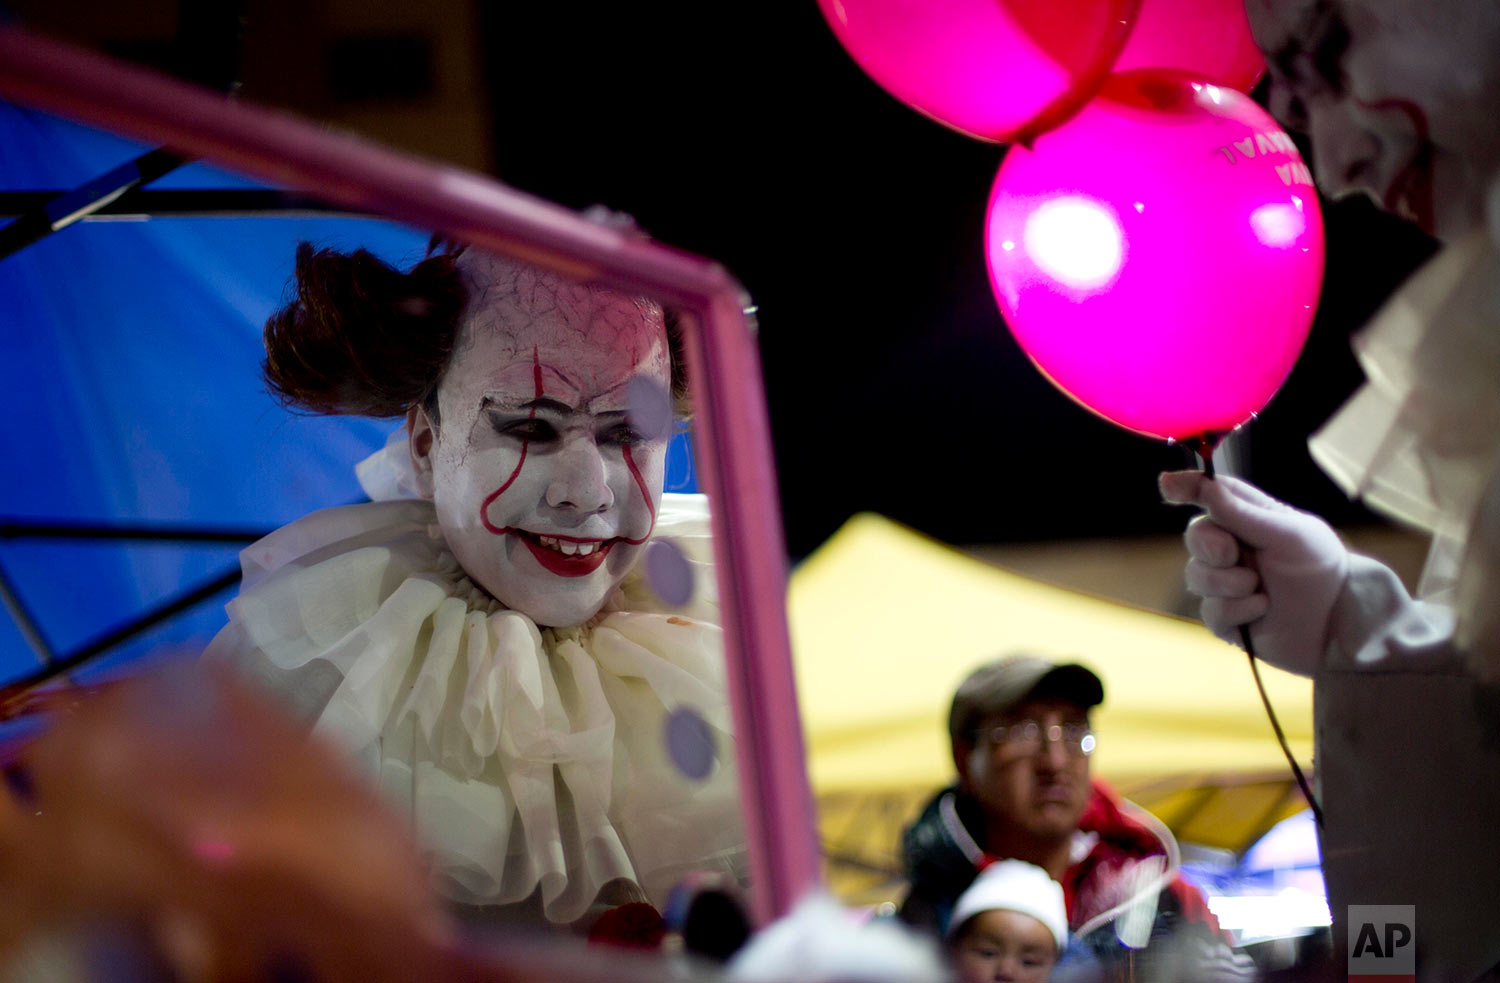 A person dressed in a diabolical clown costume looks in the mirror at the start of the Zombie Walk in La Paz, Bolivia, Saturday, Oct. 28, 2017. The annual walk is a Halloween charity event to collect money to feed street animals, according to organizers. (AP Photo/Juan Karita)